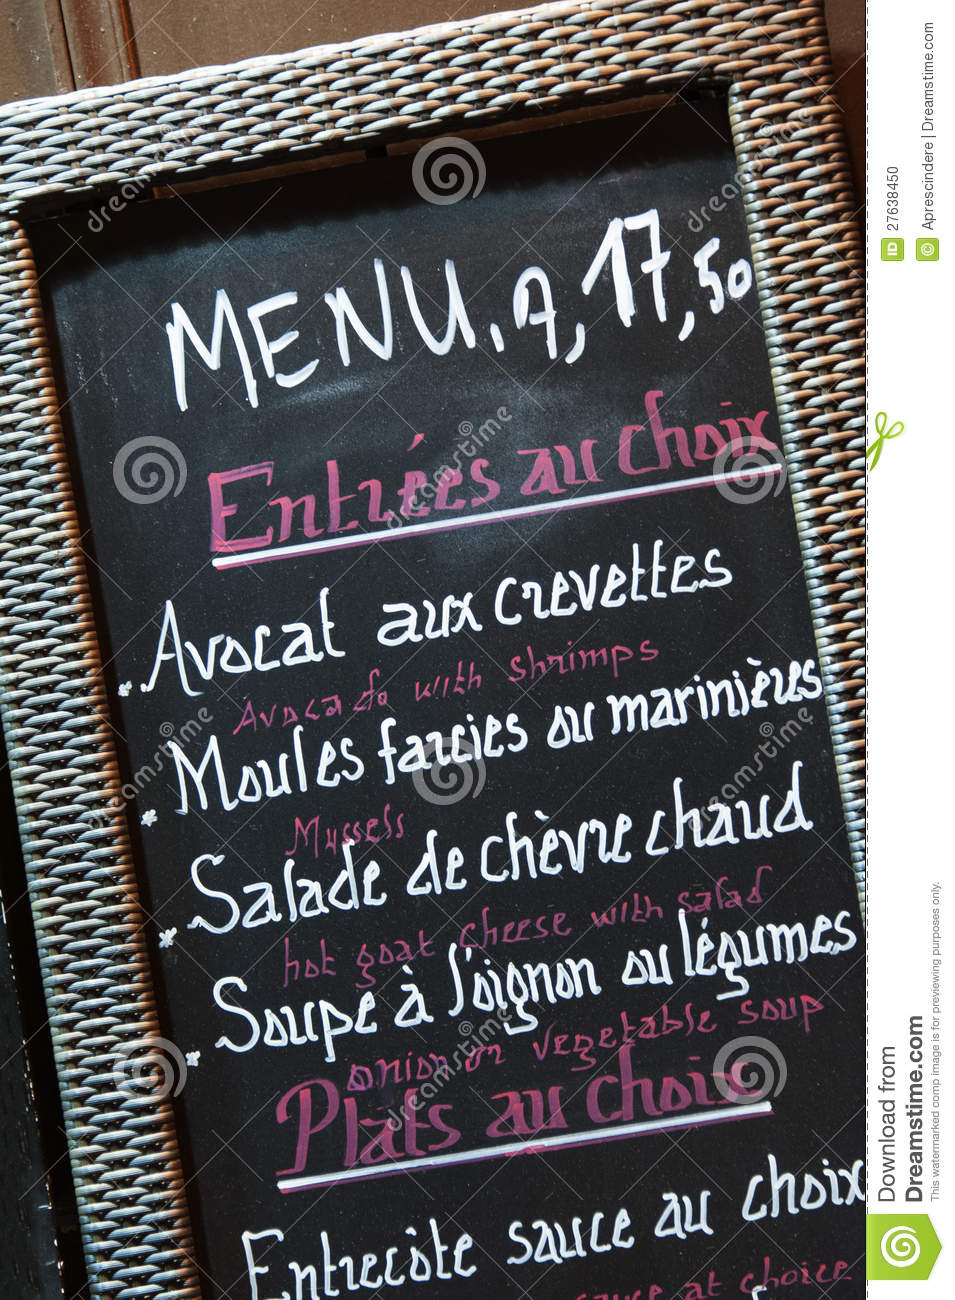 Menu francese del ristorante fotografia stock immagine for Menu tipico frances